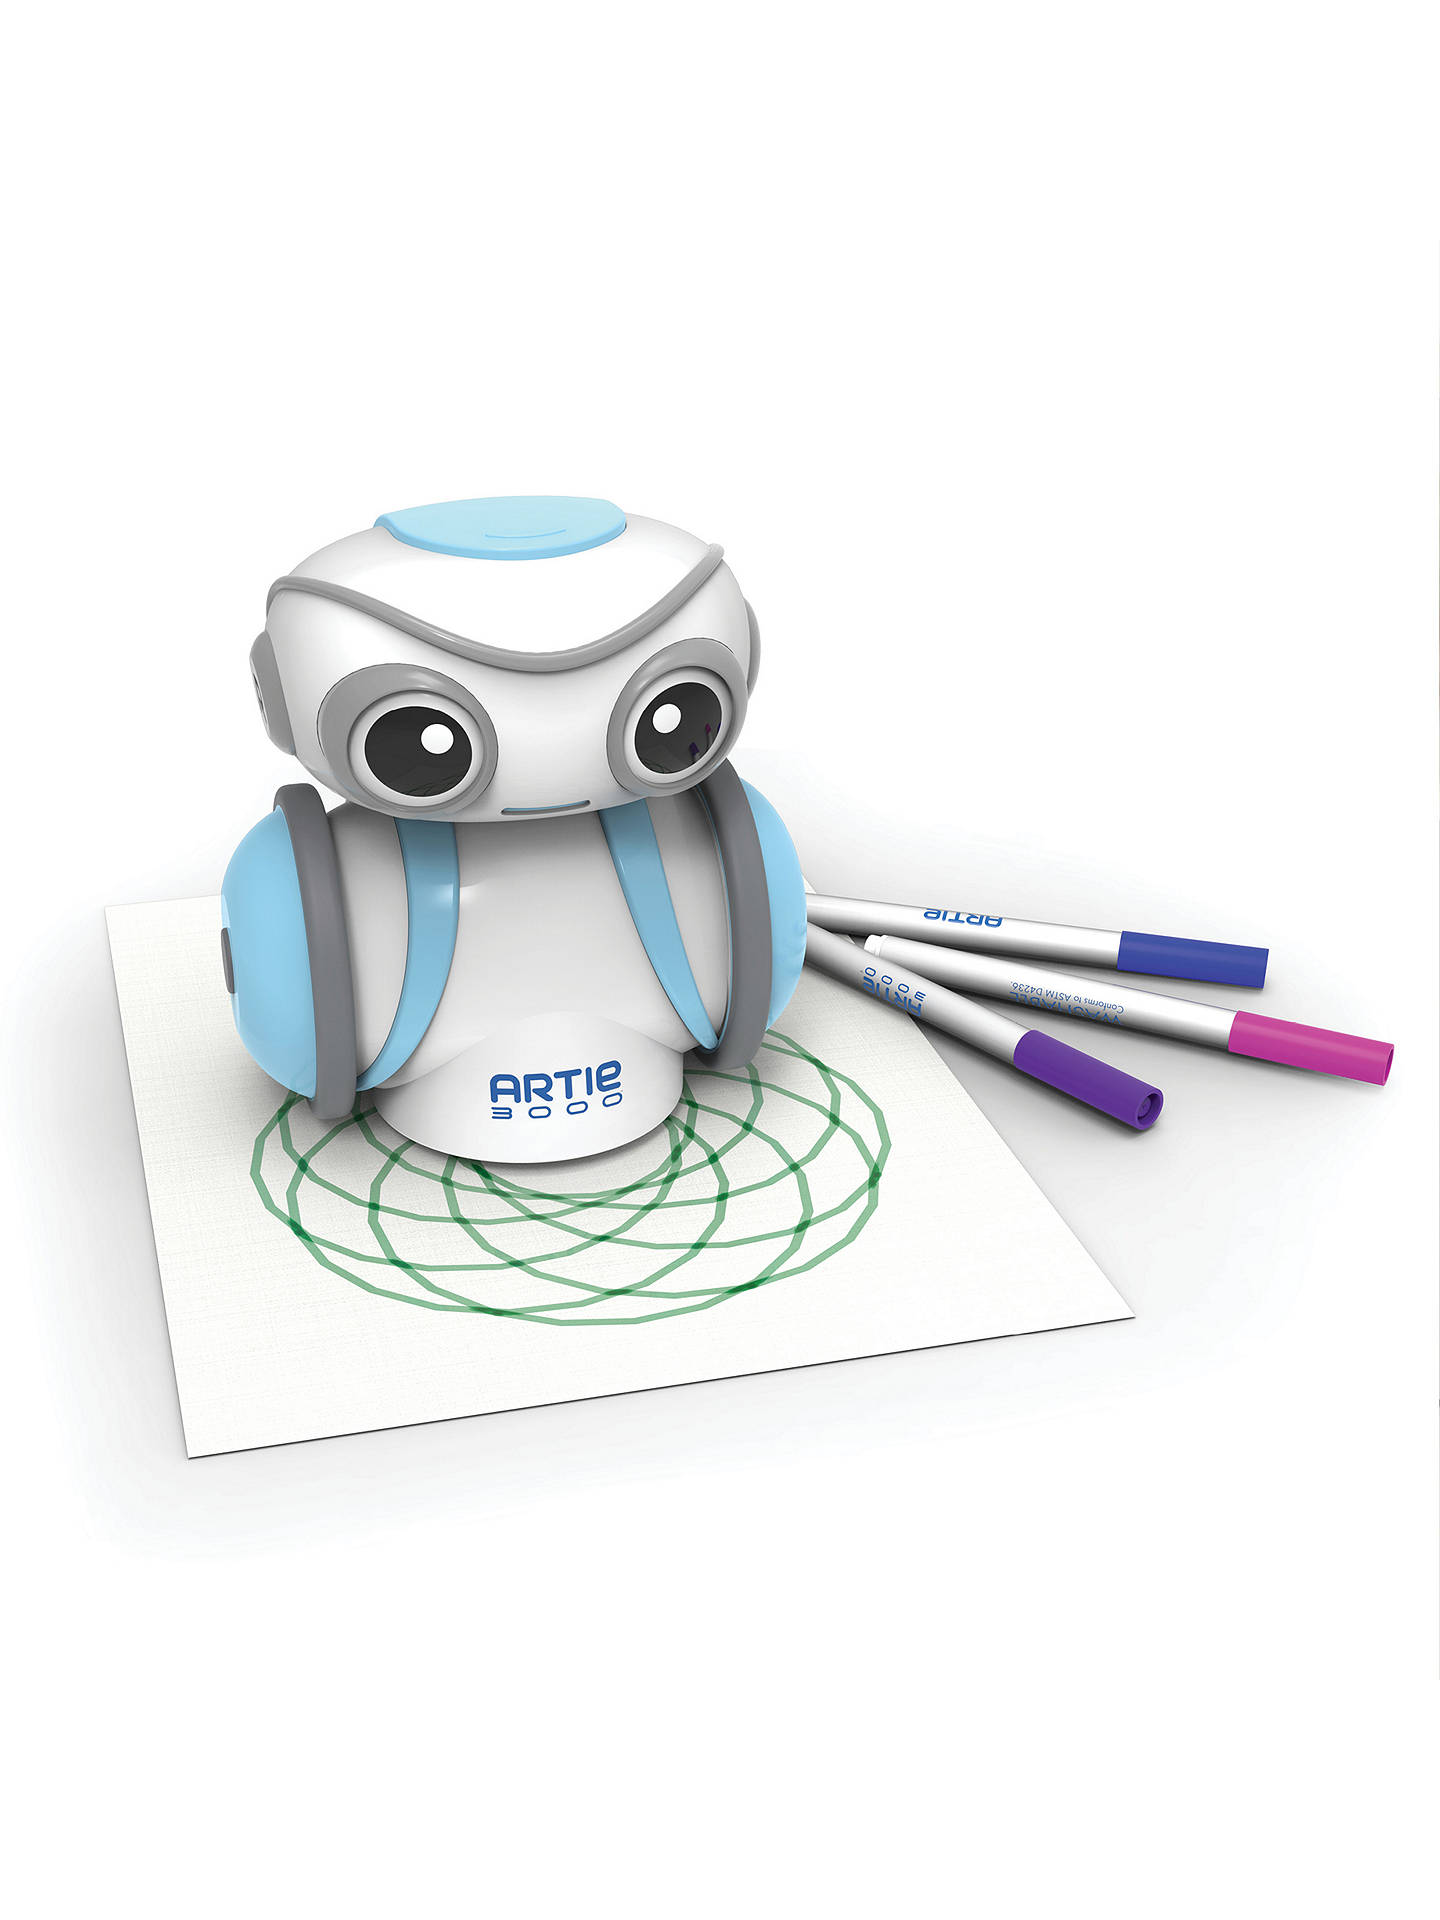 Buy Learning Resources Artie 3000 Drawing Coding Robot Online at johnlewis.com